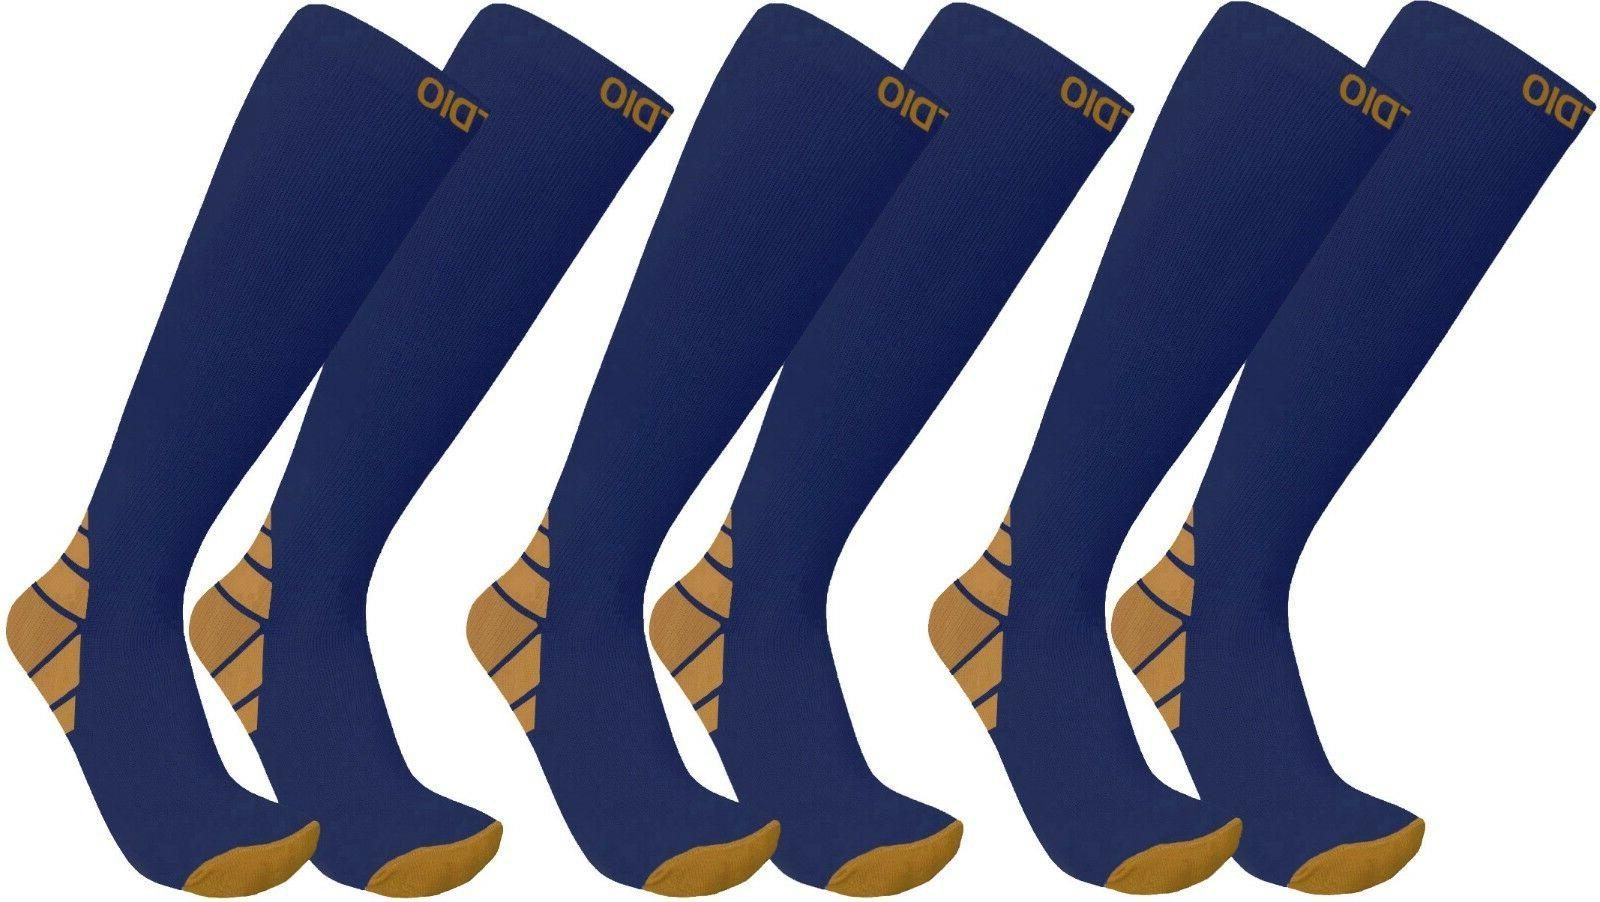 Plus 3-Pair 20-30mmHG Compression Support Socks